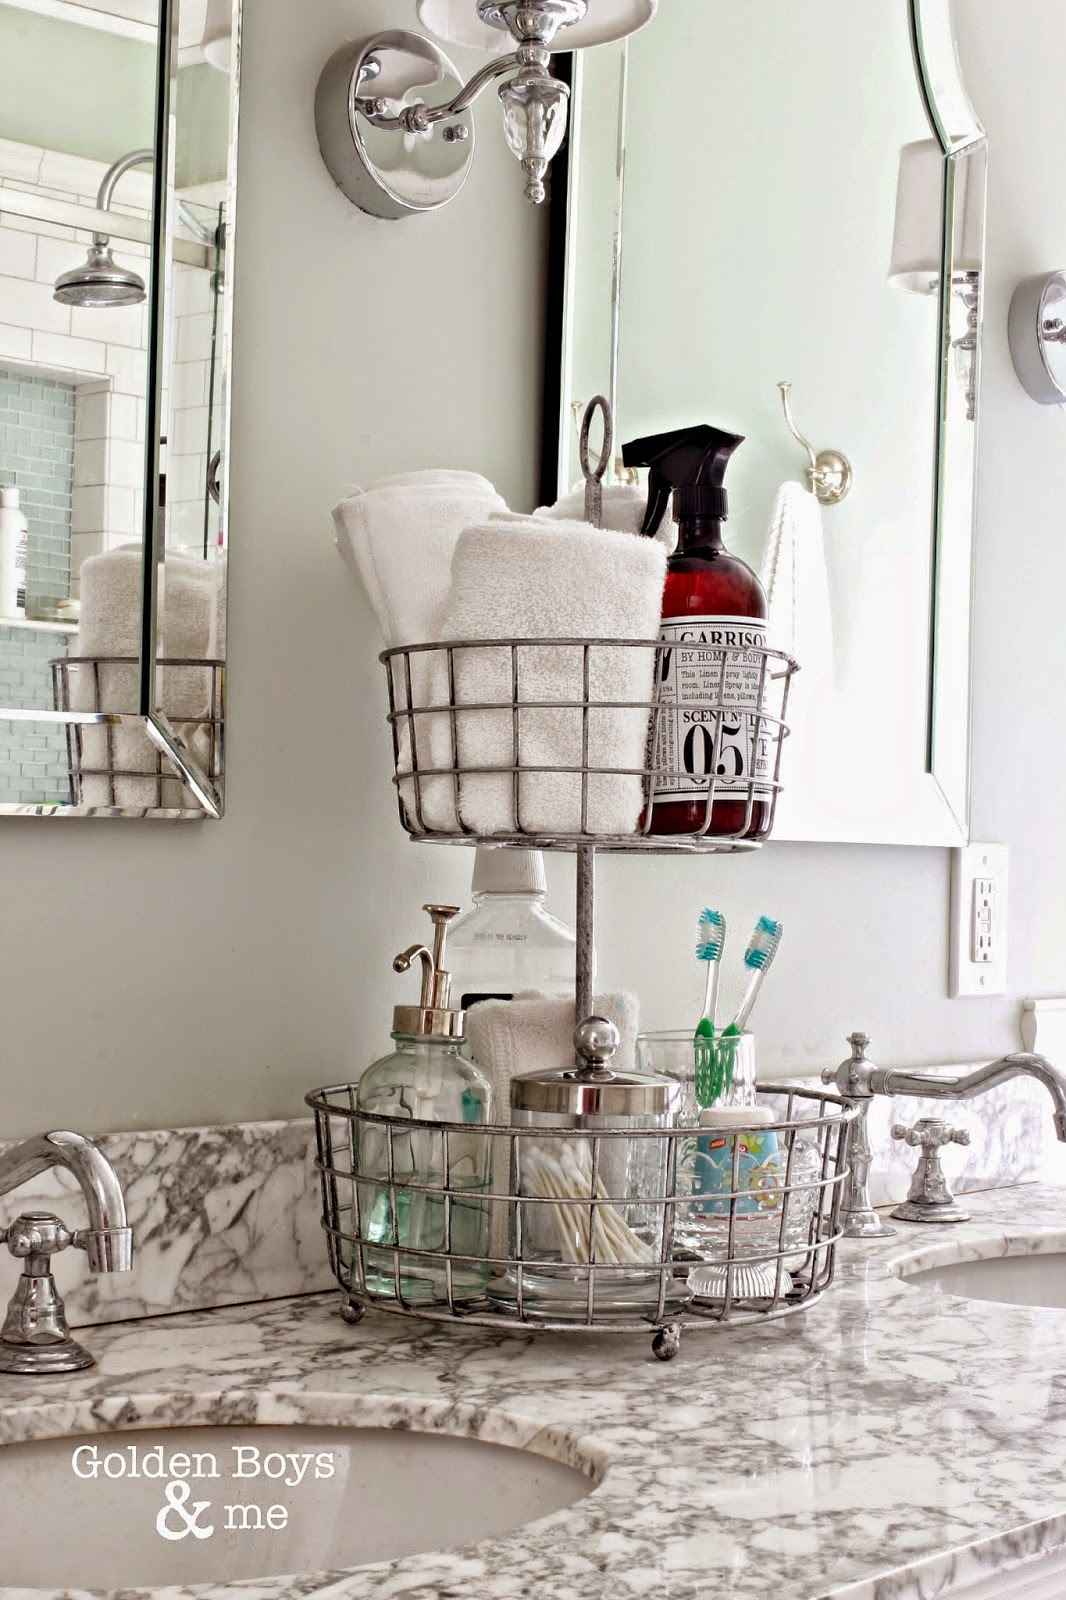 10 Ways To Totally Organize Your Bathroom In 10 Minutes   101 Days Of  Organization